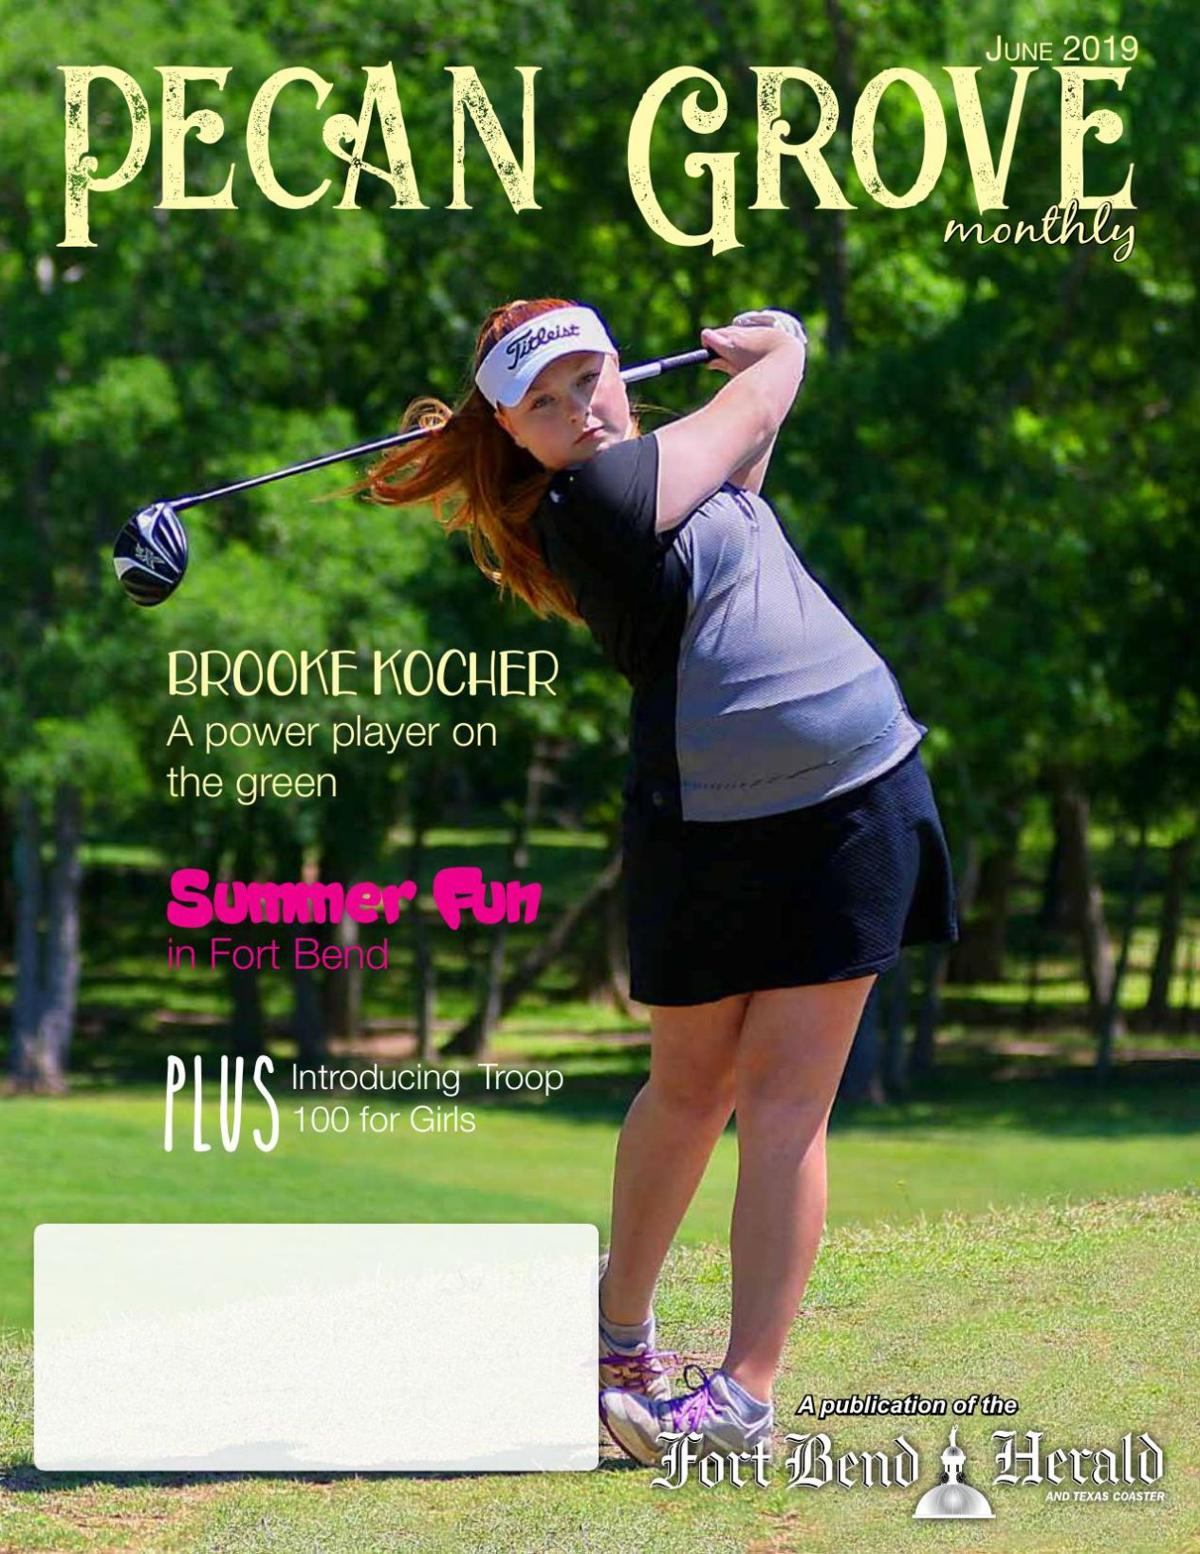 Pecan Grove Monthly: June 2019